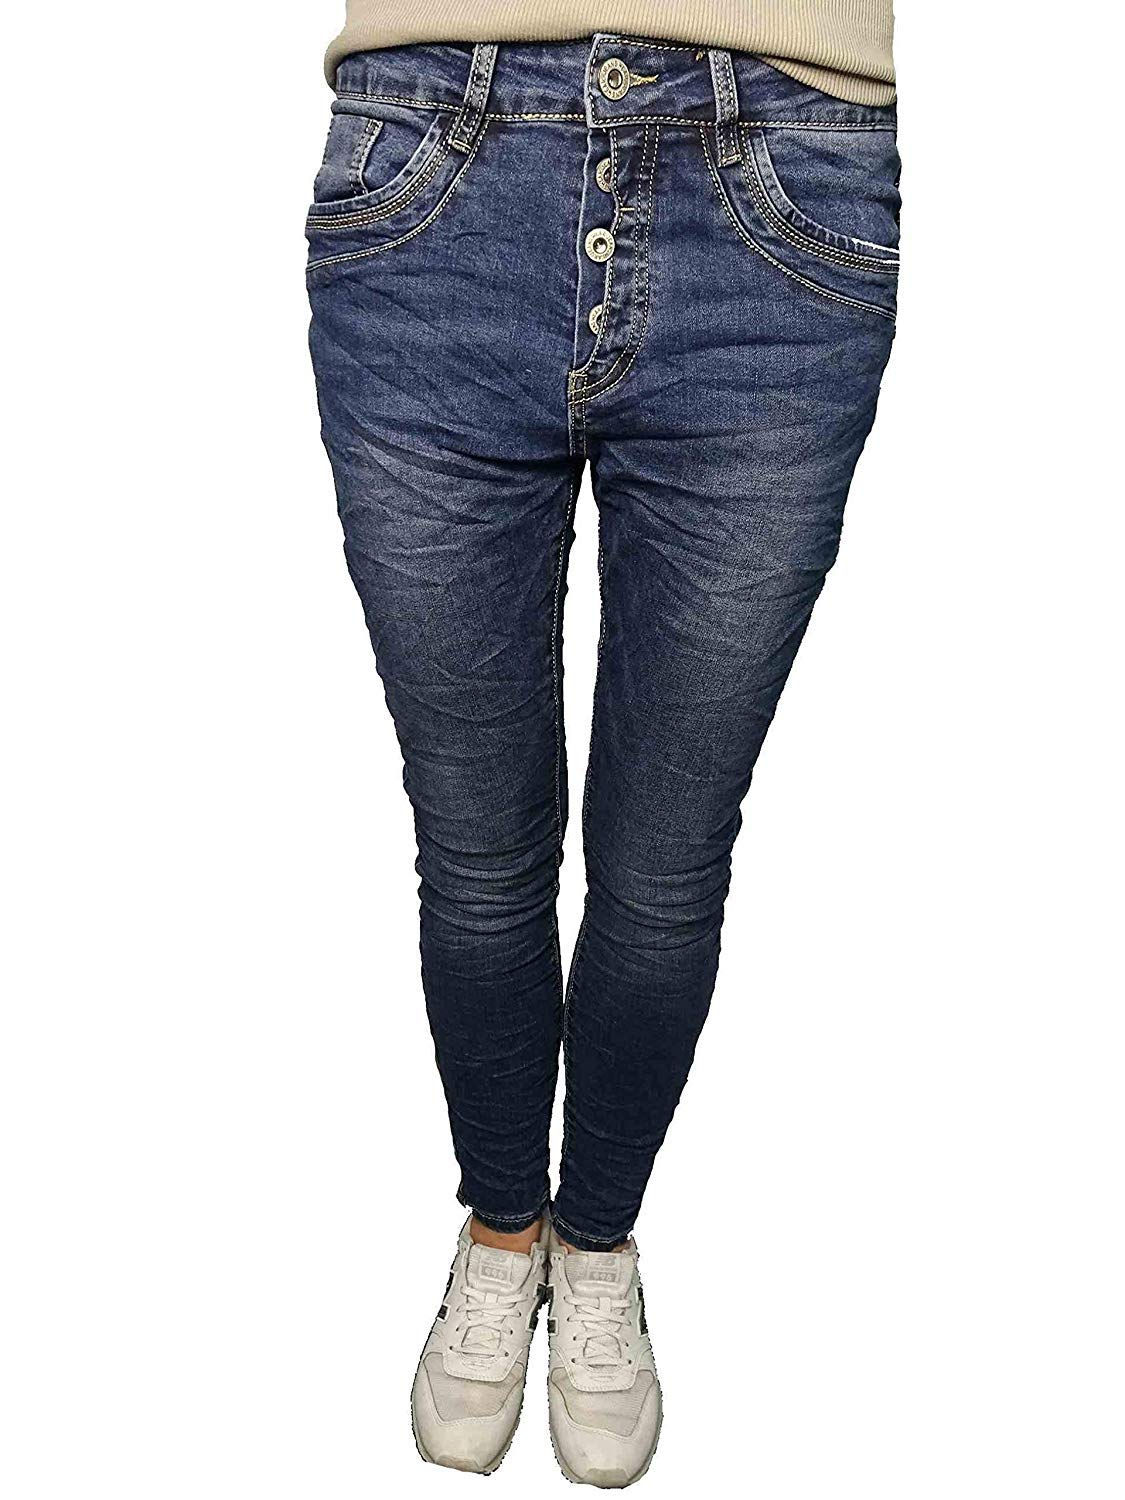 KAROSTAR BAGGY DAMEN Jeans 4 Button Style New Colour